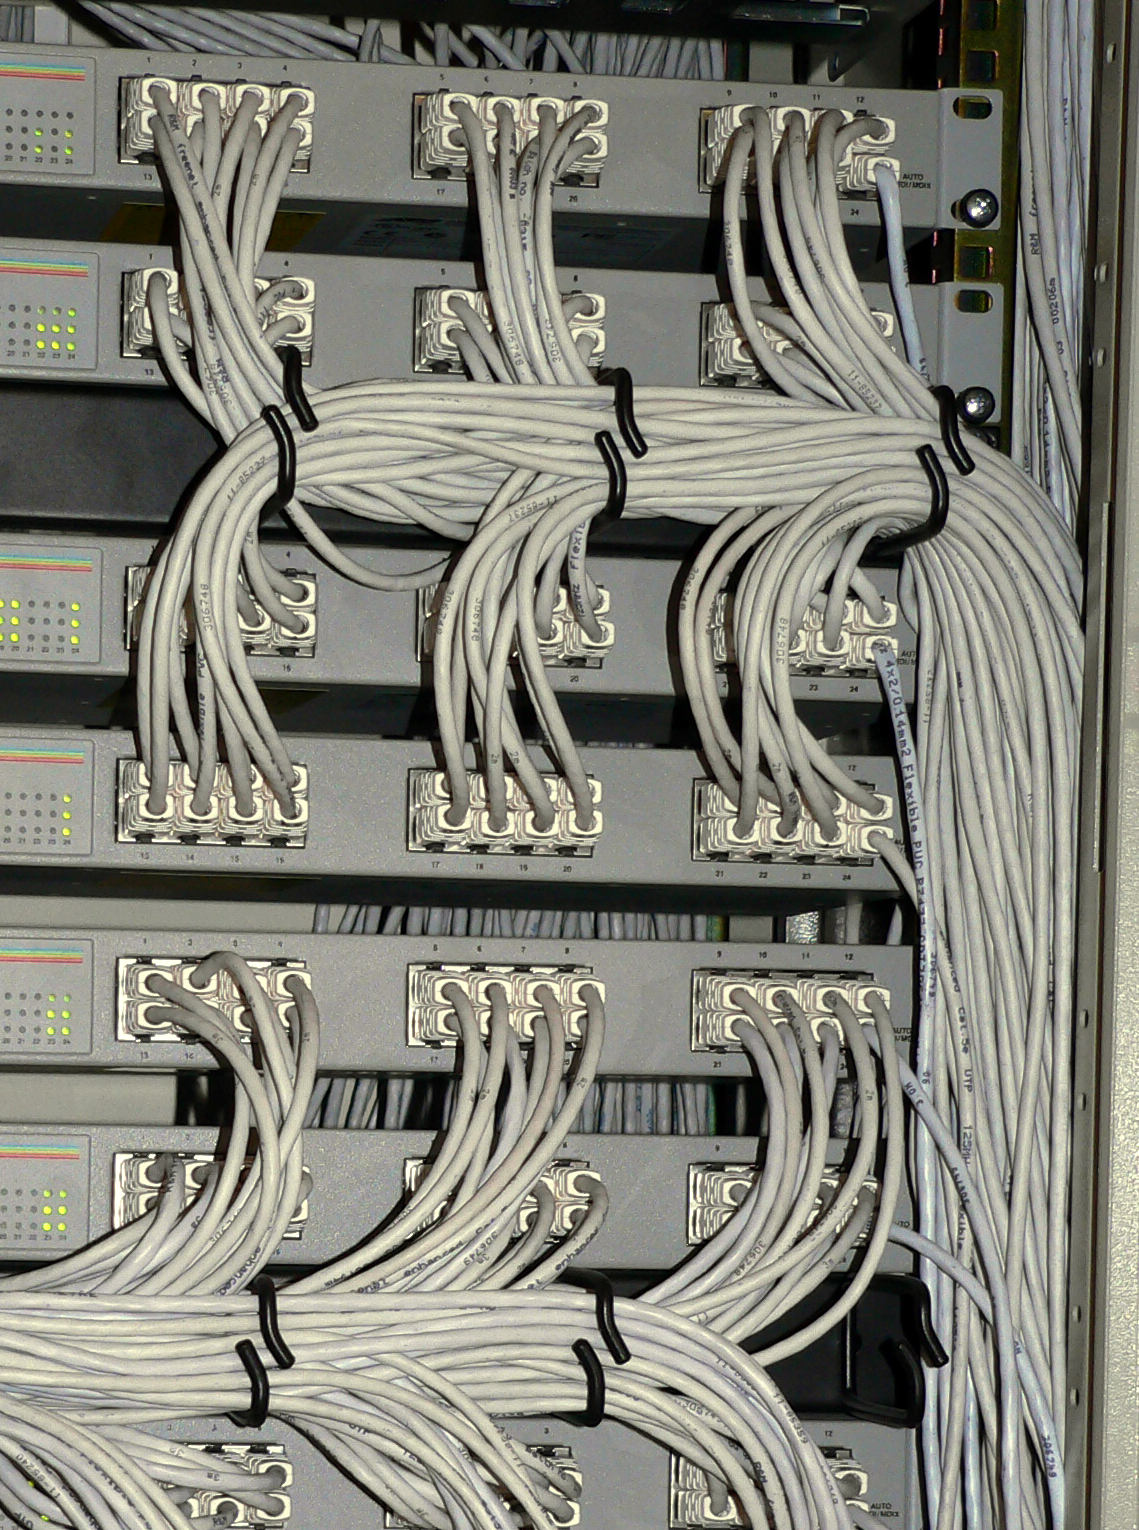 Organized Cables